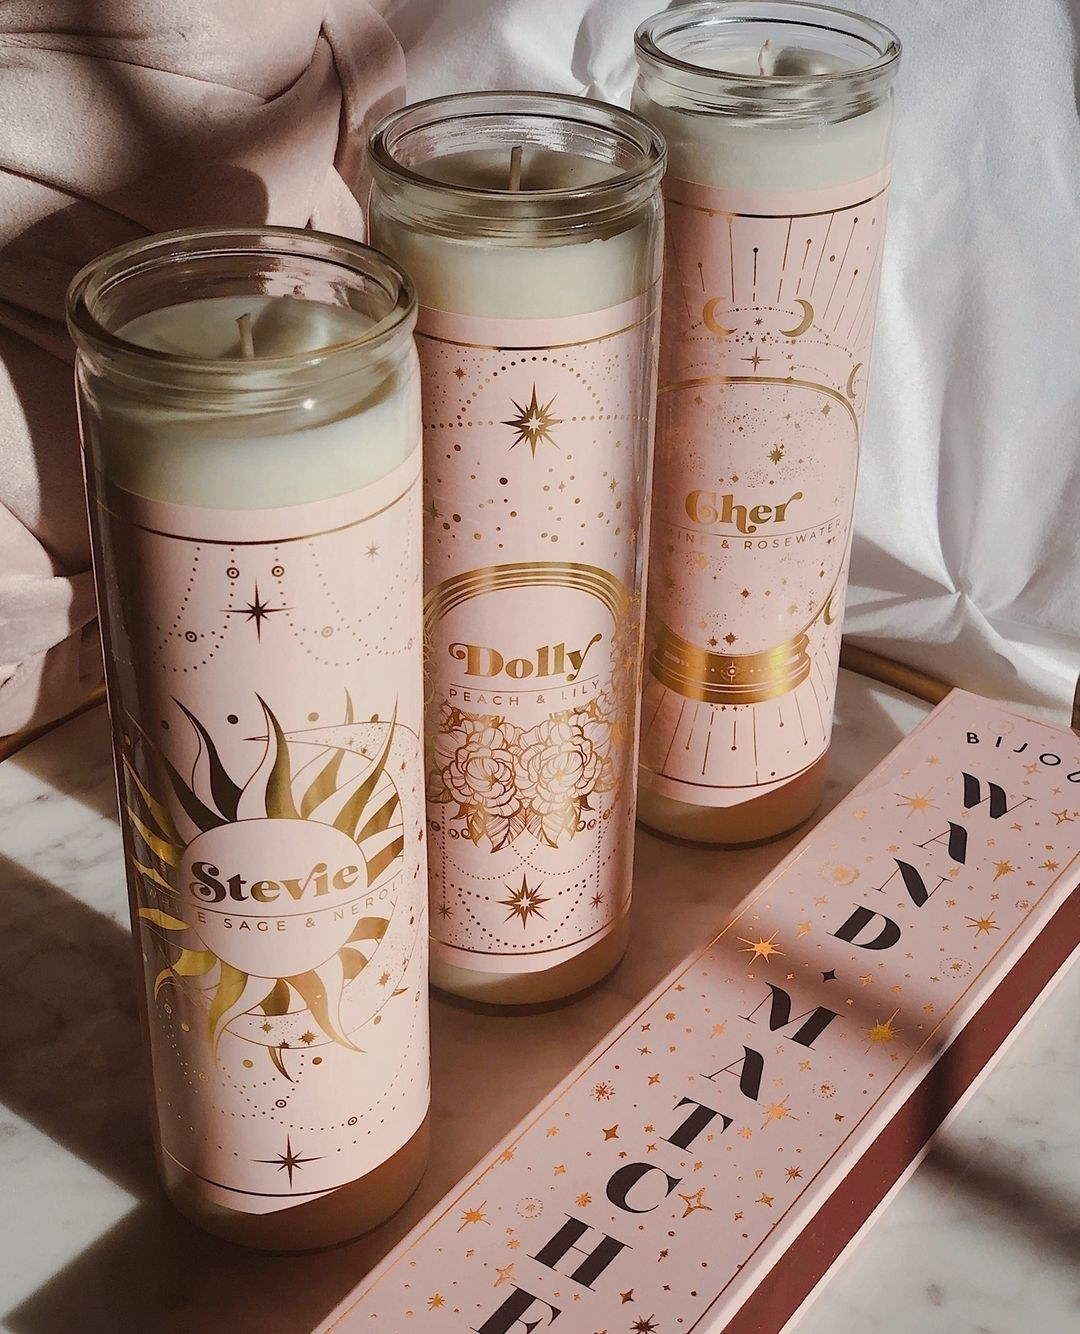 the three candles